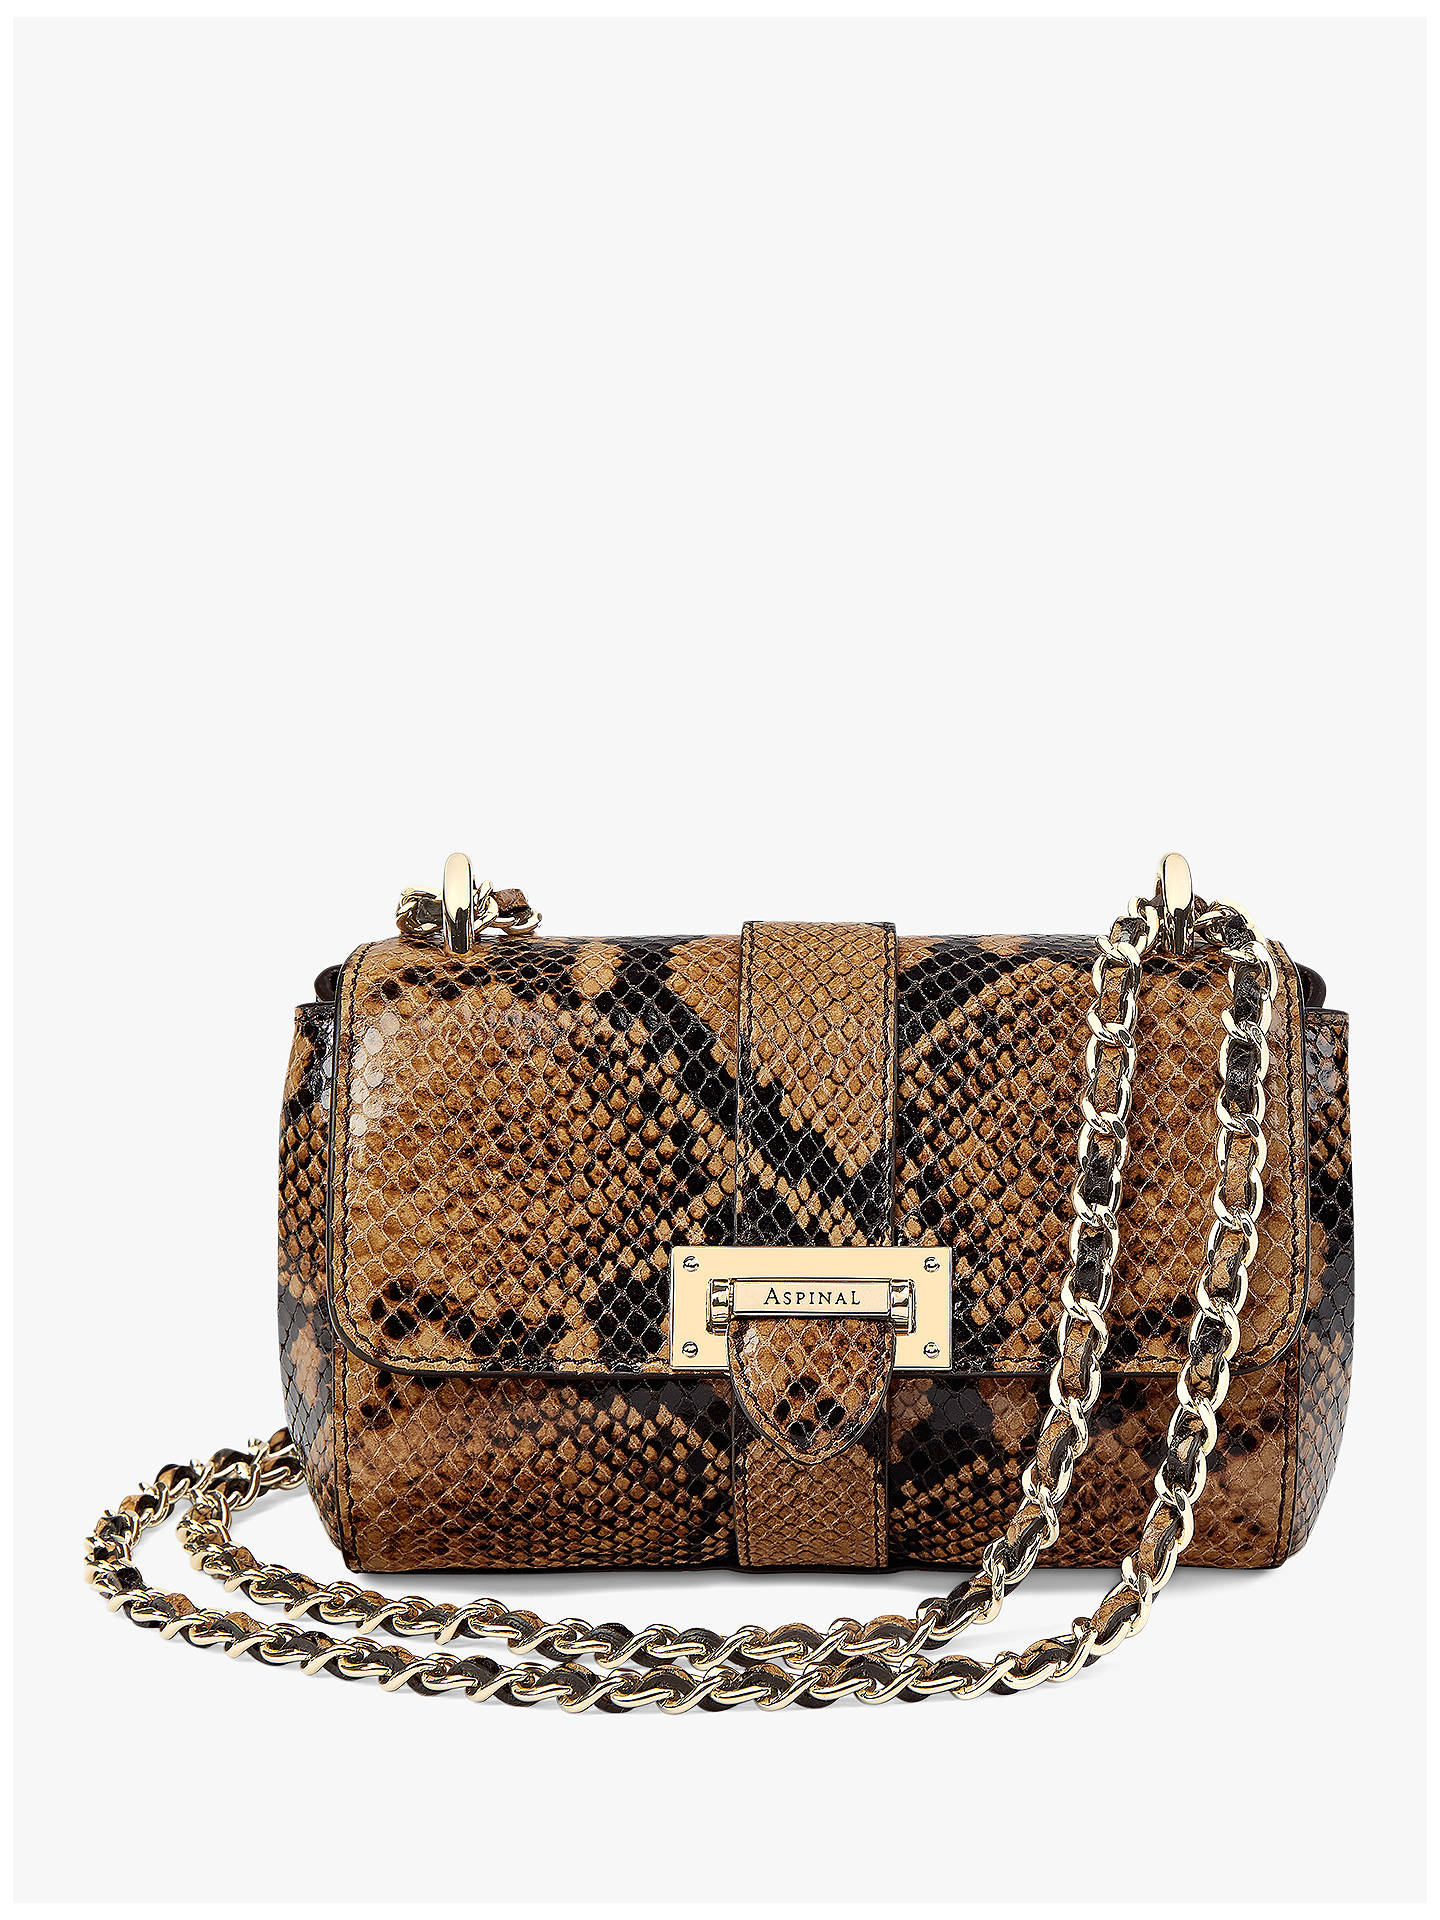 BuyAspinal of London Lottie Micro Leather Cross Body Bag, Mustard Snake  Online at johnlewis. 42e7d4d288